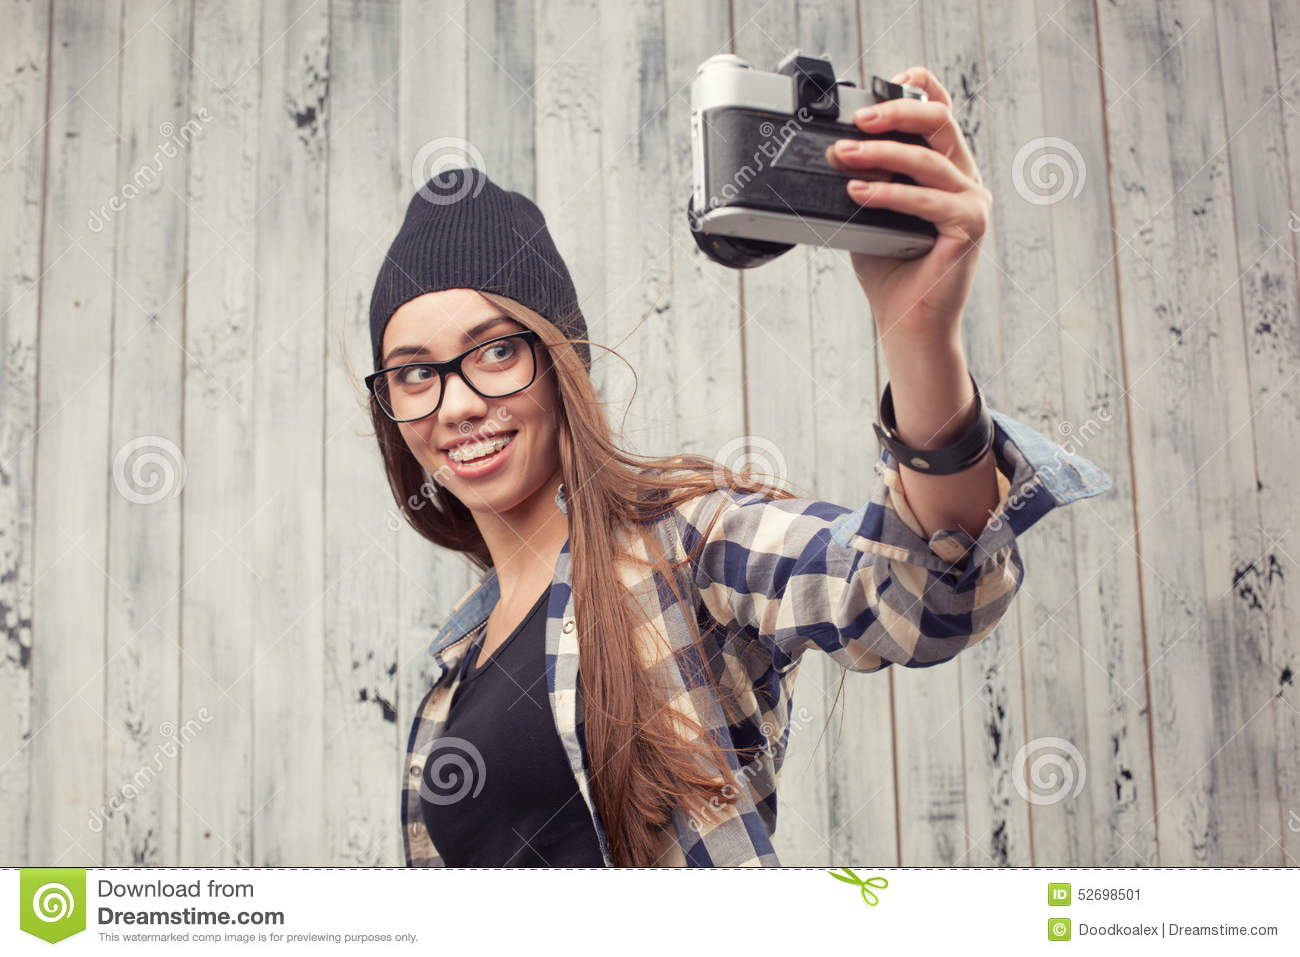 Can recommend Girl with beanie and glasses porn